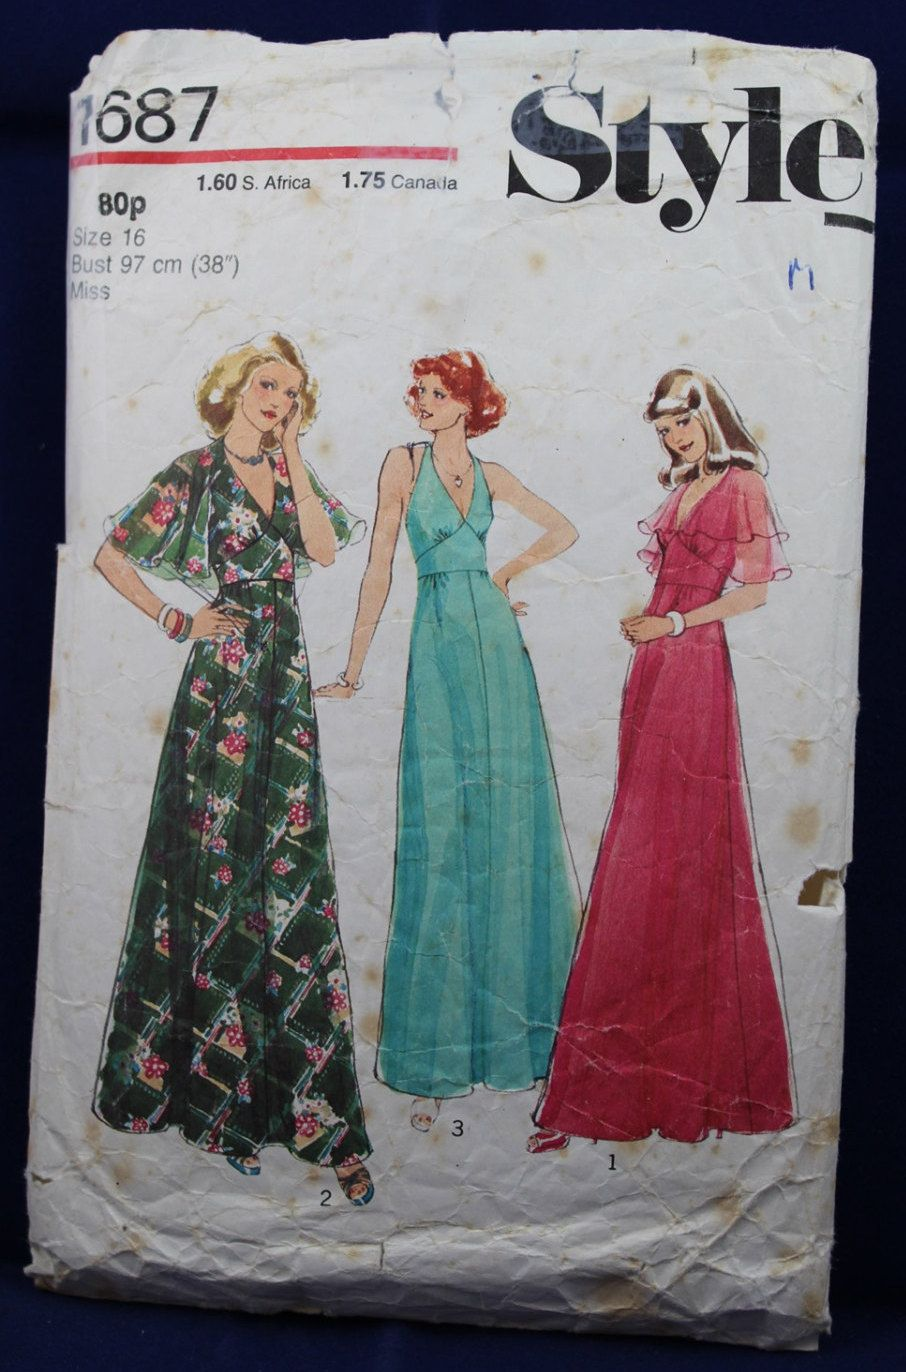 Us sewing pattern for a womanus dress in size style by